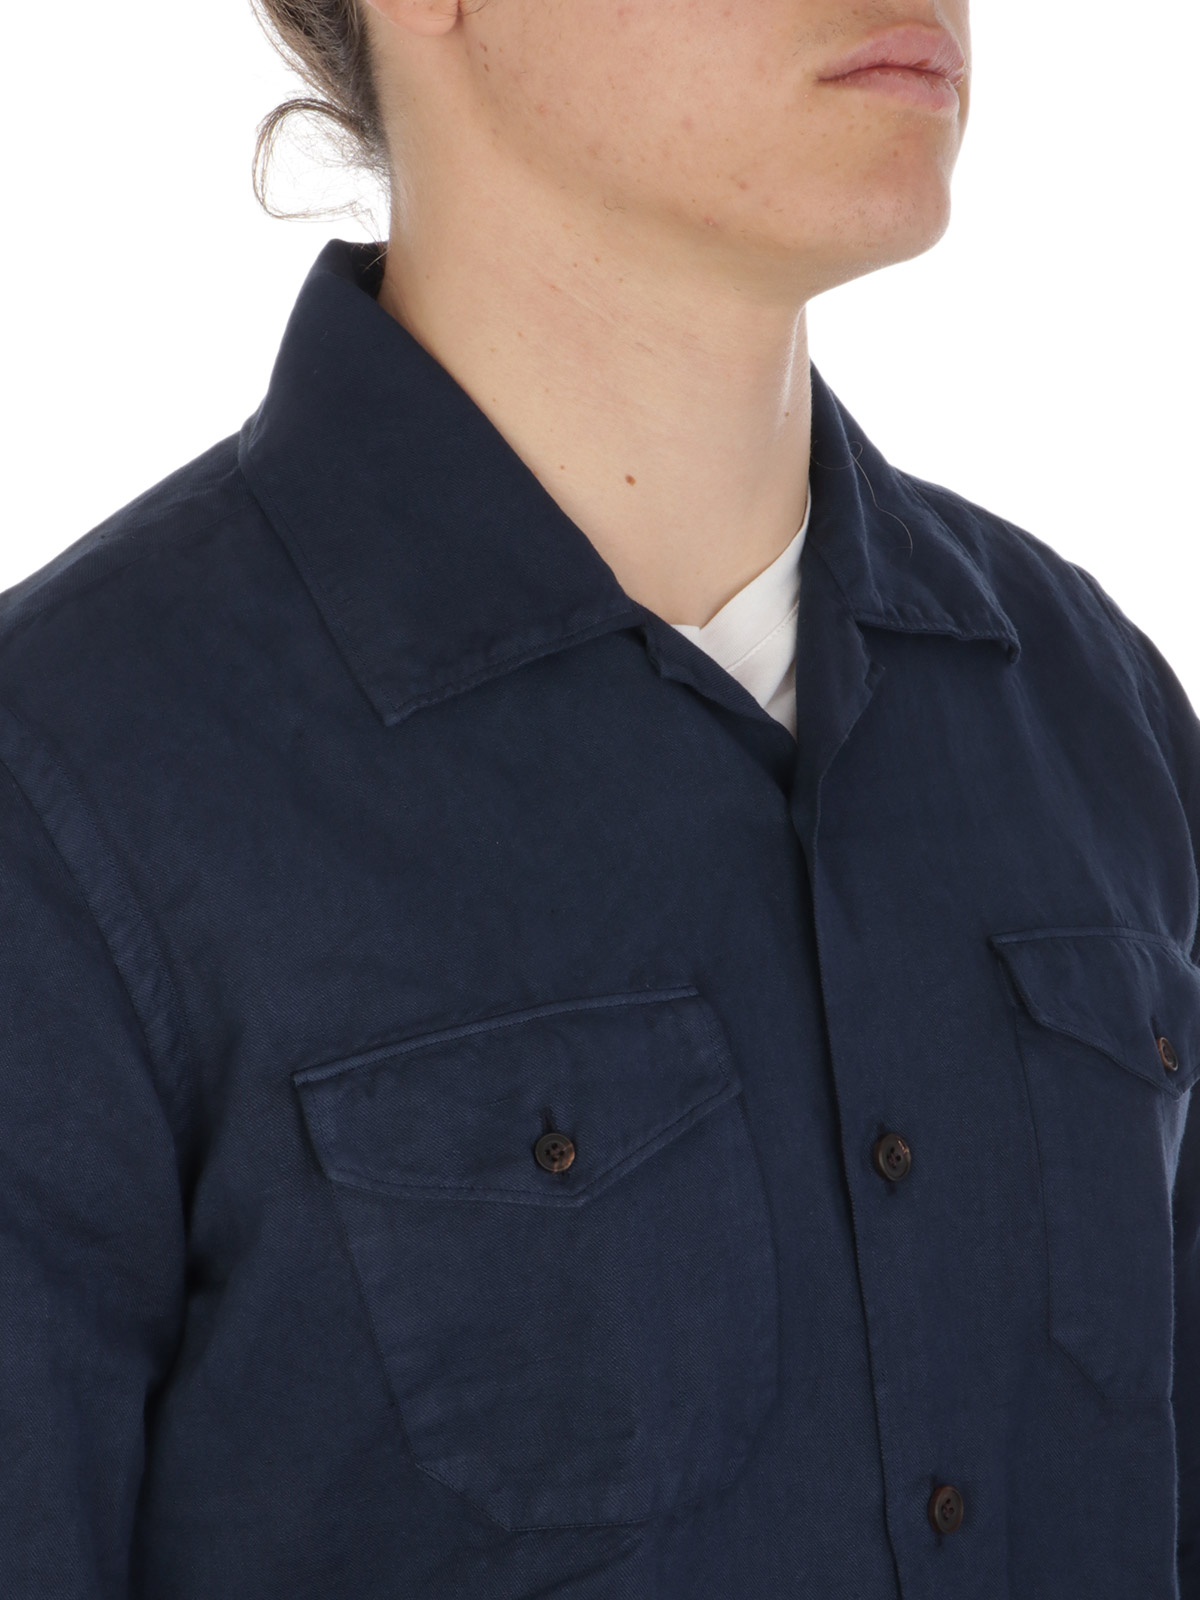 Picture of ELEVENTY | Men's Cotton and Linen Shirt